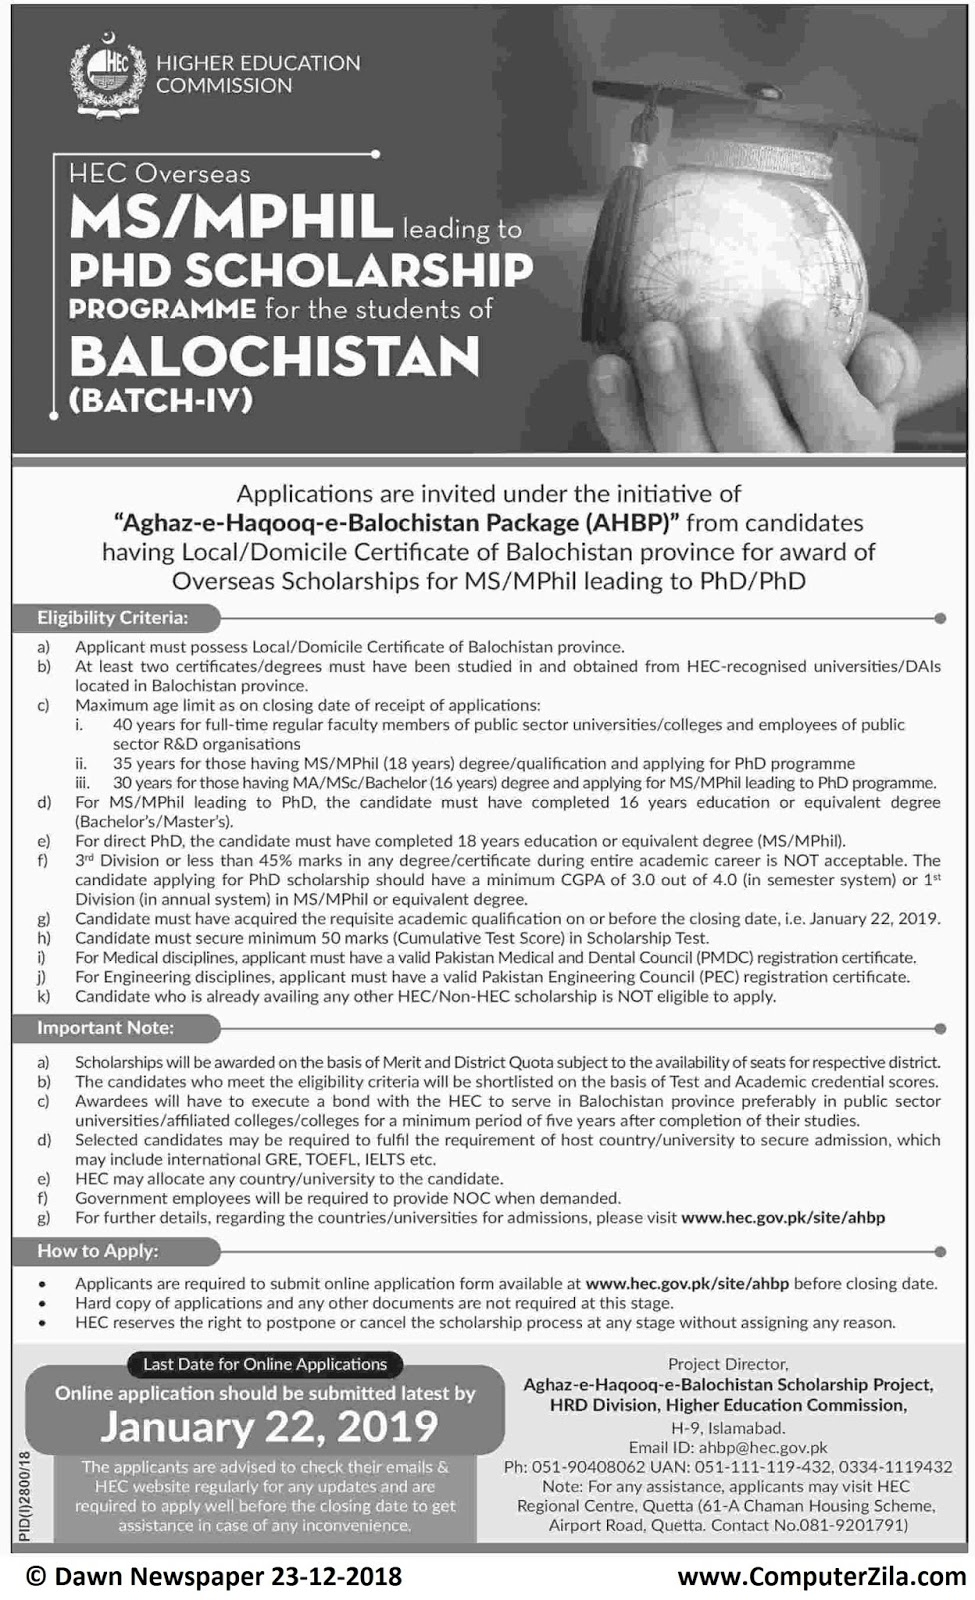 MS/MPhil leading to PHD Scholarship for Balochistan